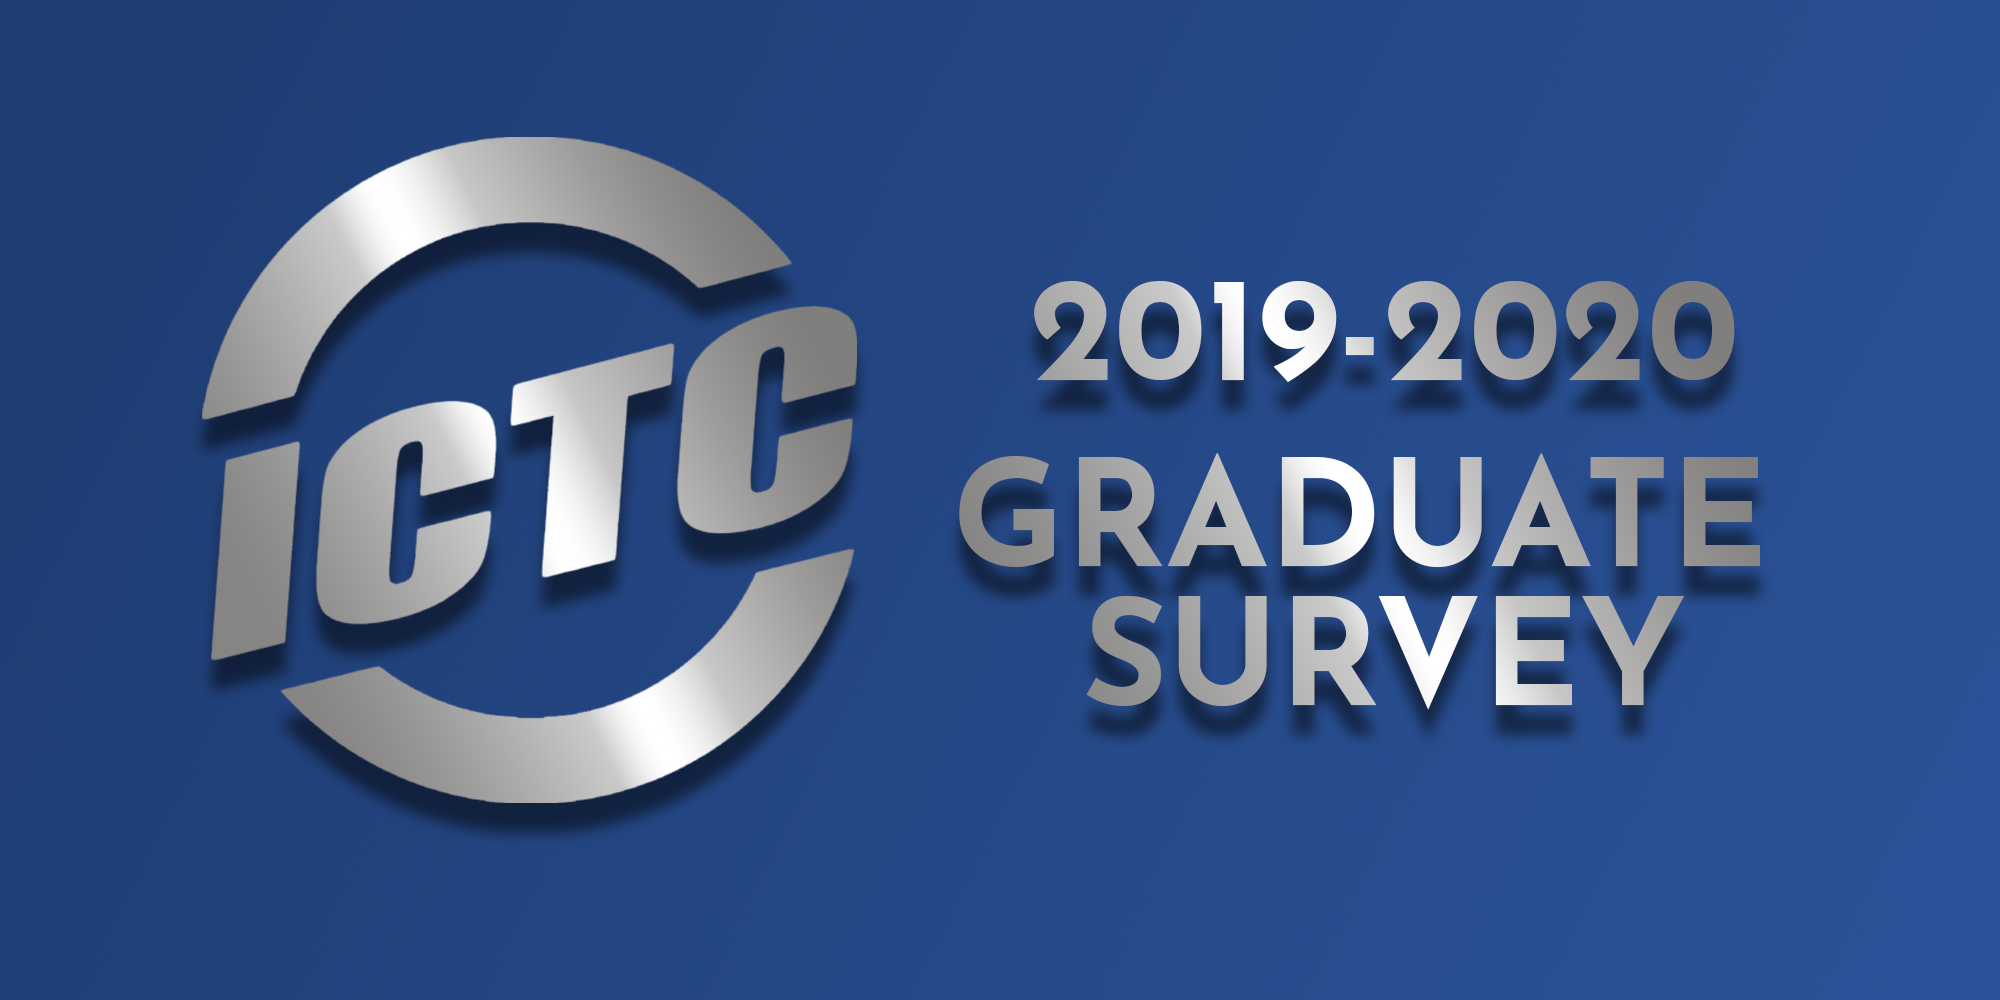 Attention ICTC 2020 Graduates!